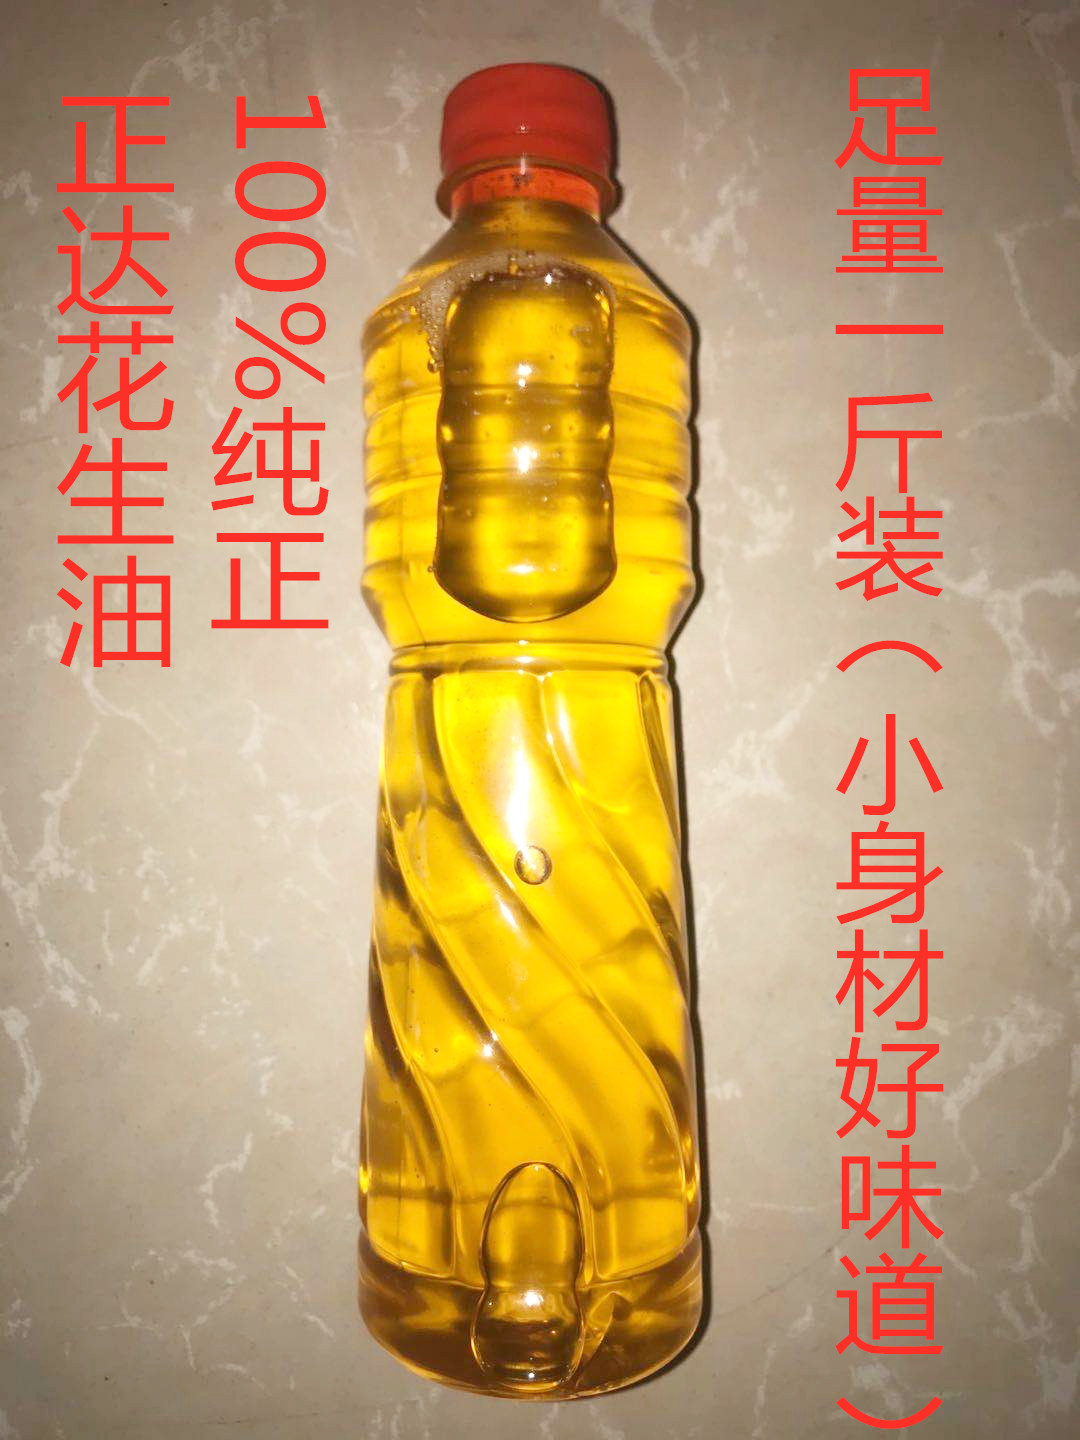 500 ml of peanut oil from farmers for trial loading 1 jin of Zhengda fresh pressed in Guangxi